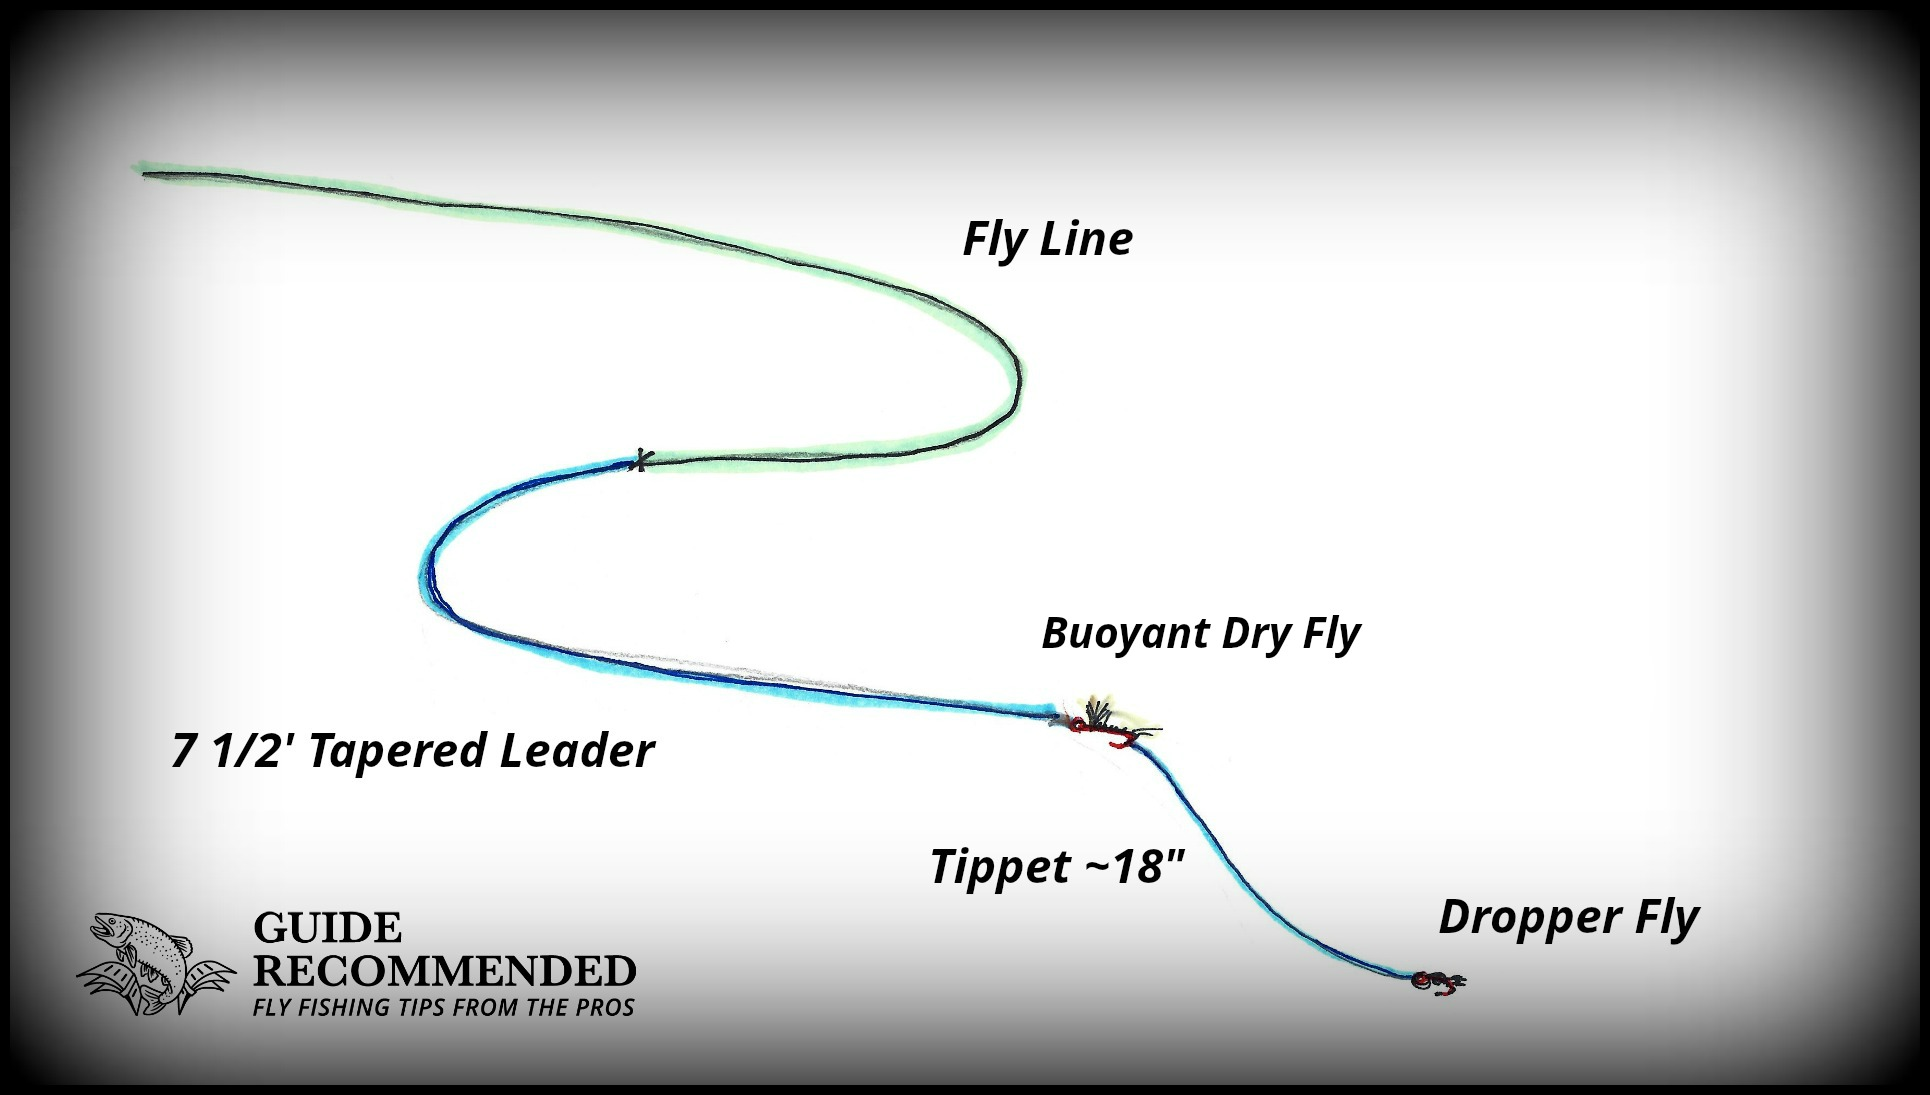 Rig a DRY FLY with Dropper